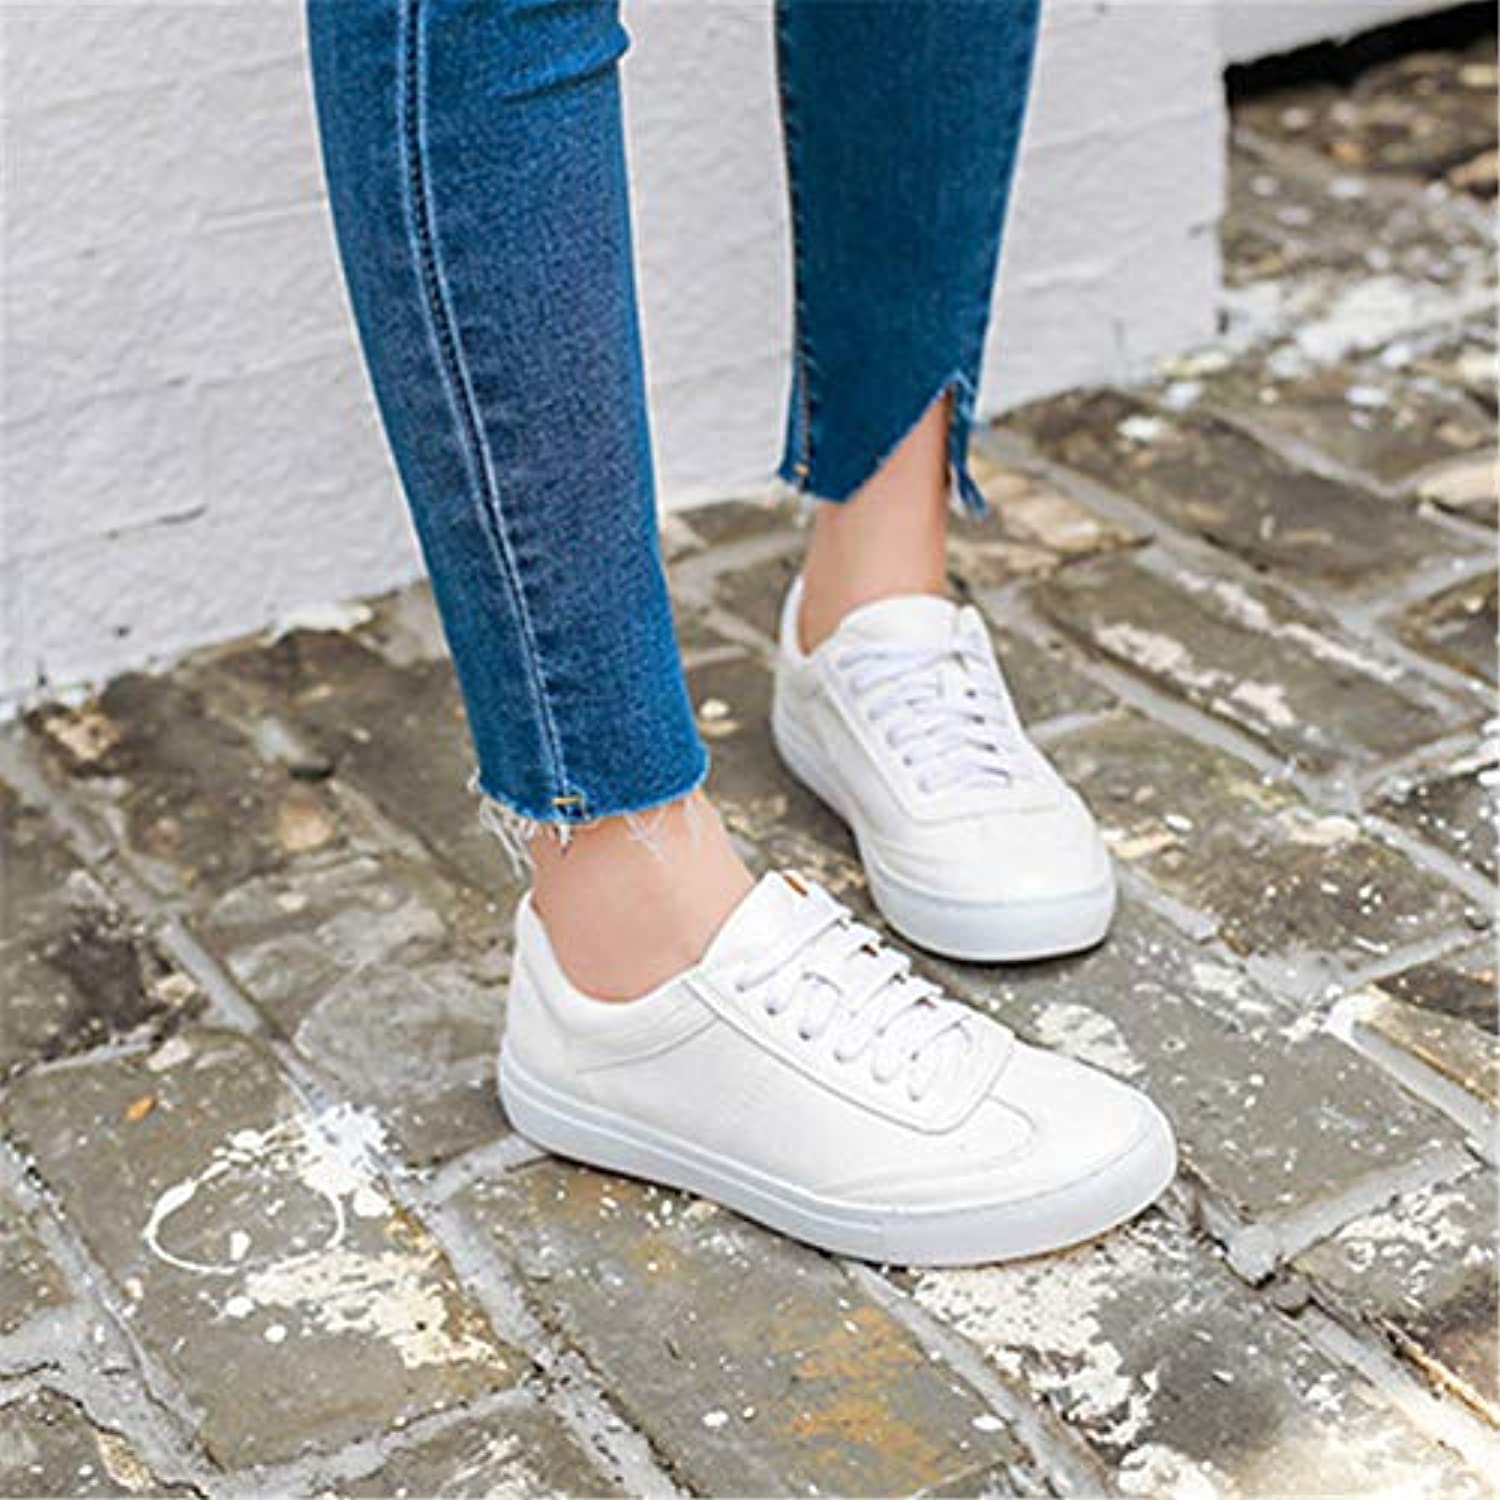 Women's shoes Pigskin Spring Comfort Sneakers White